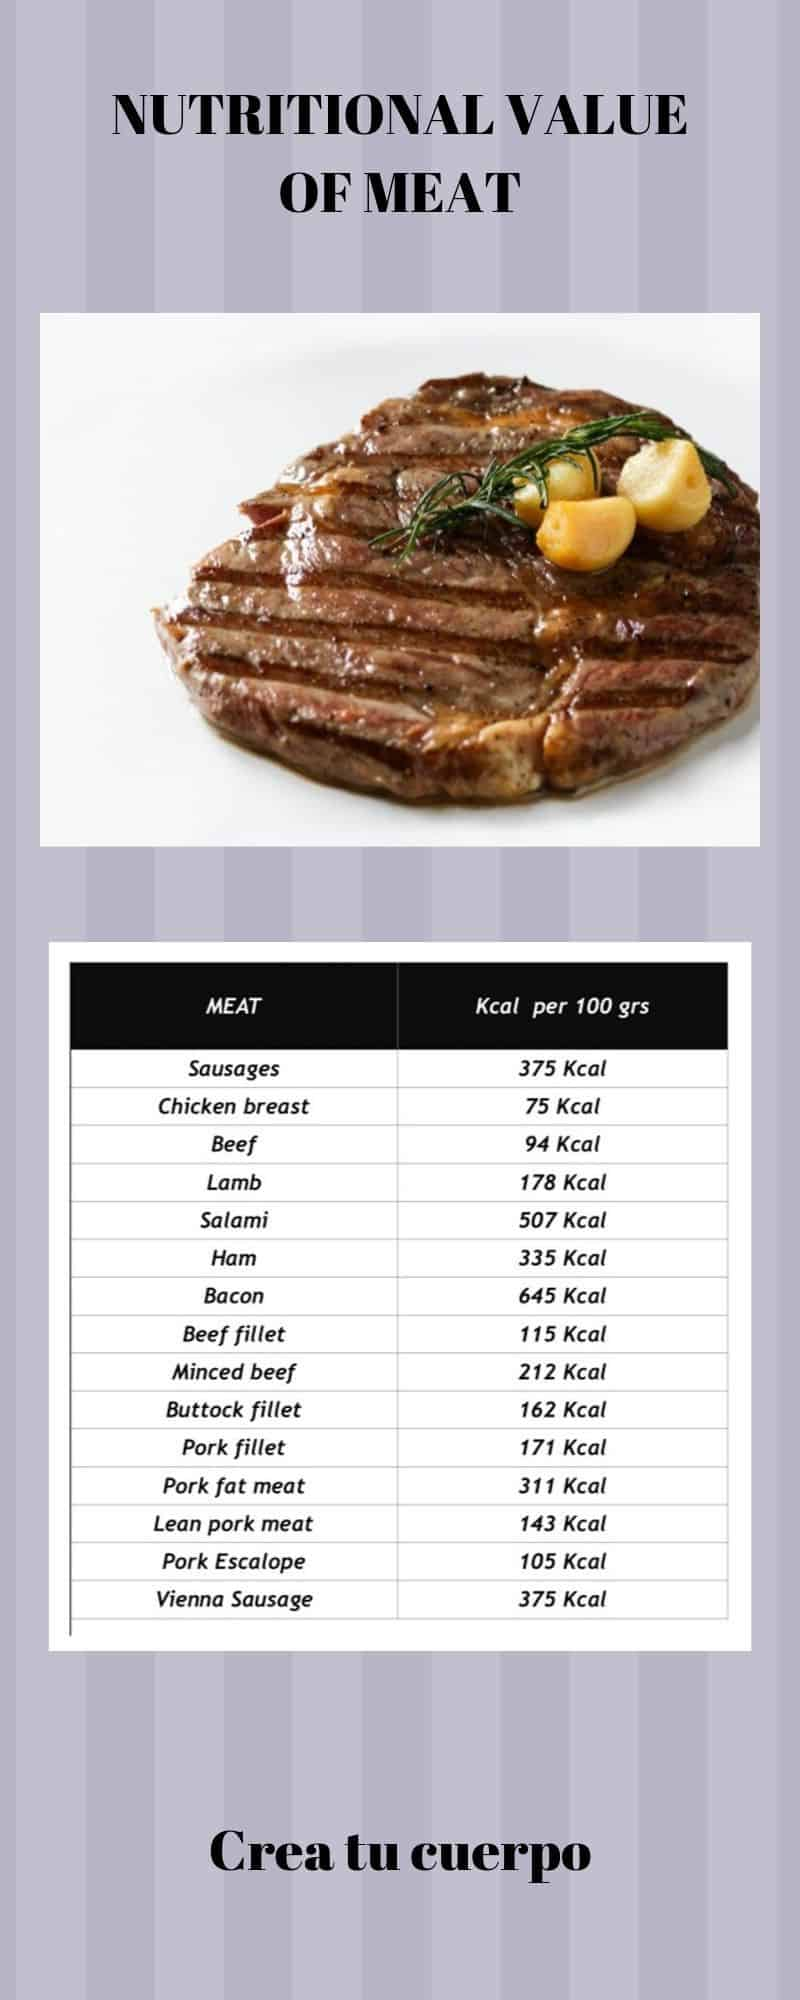 Graphic of calories that are in meat